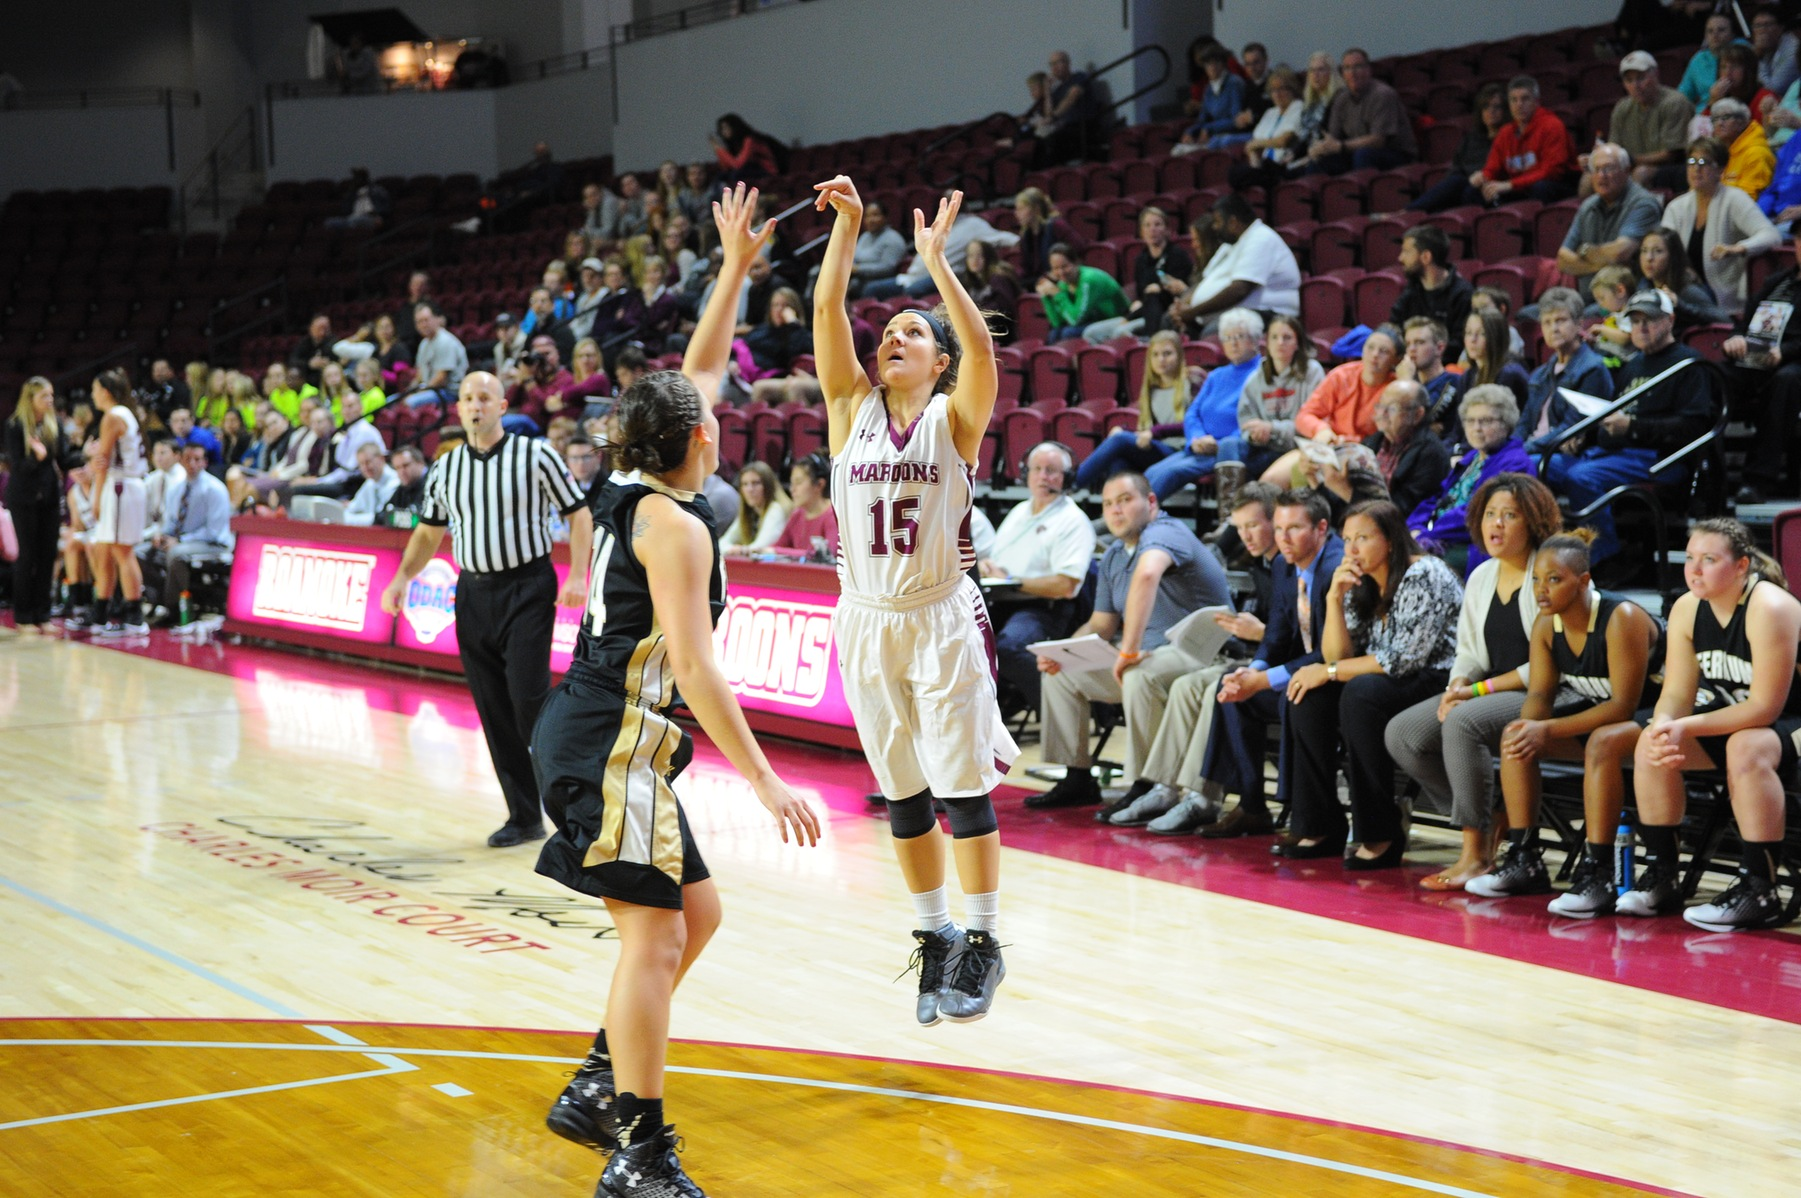 Women's Basketball Molly Hassell #15